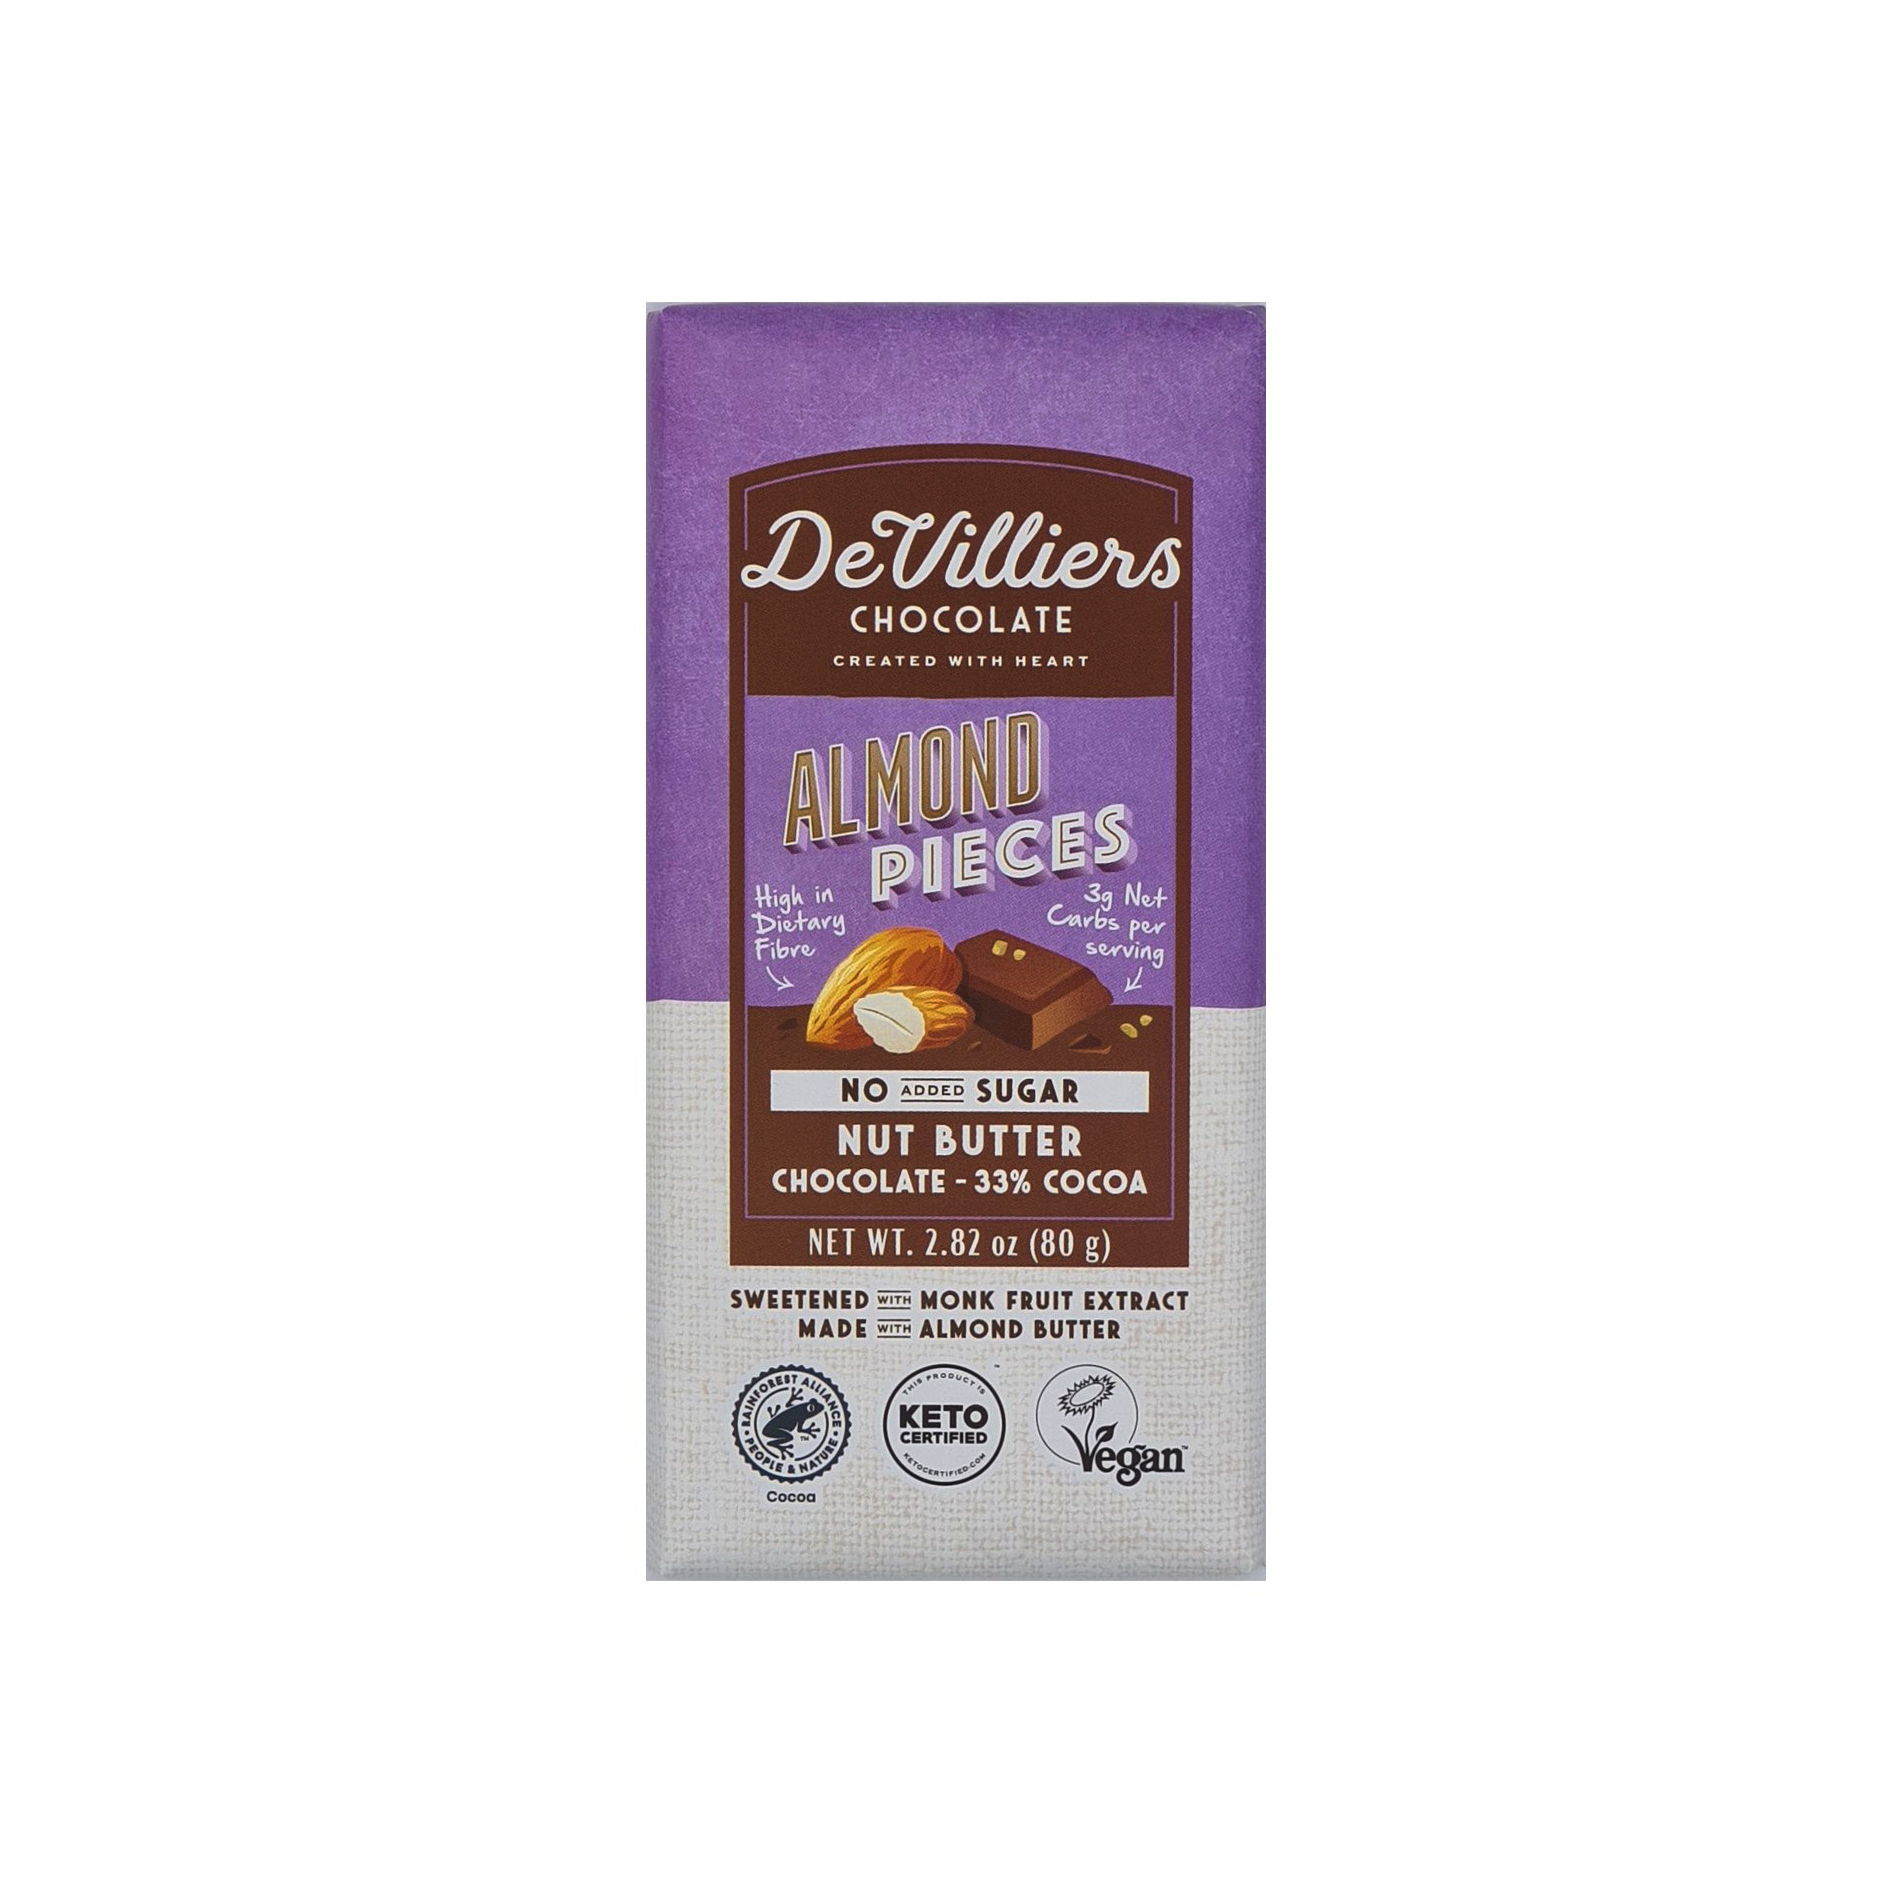 No Added Sugar Almond Nut Butter Chocolate with Almond